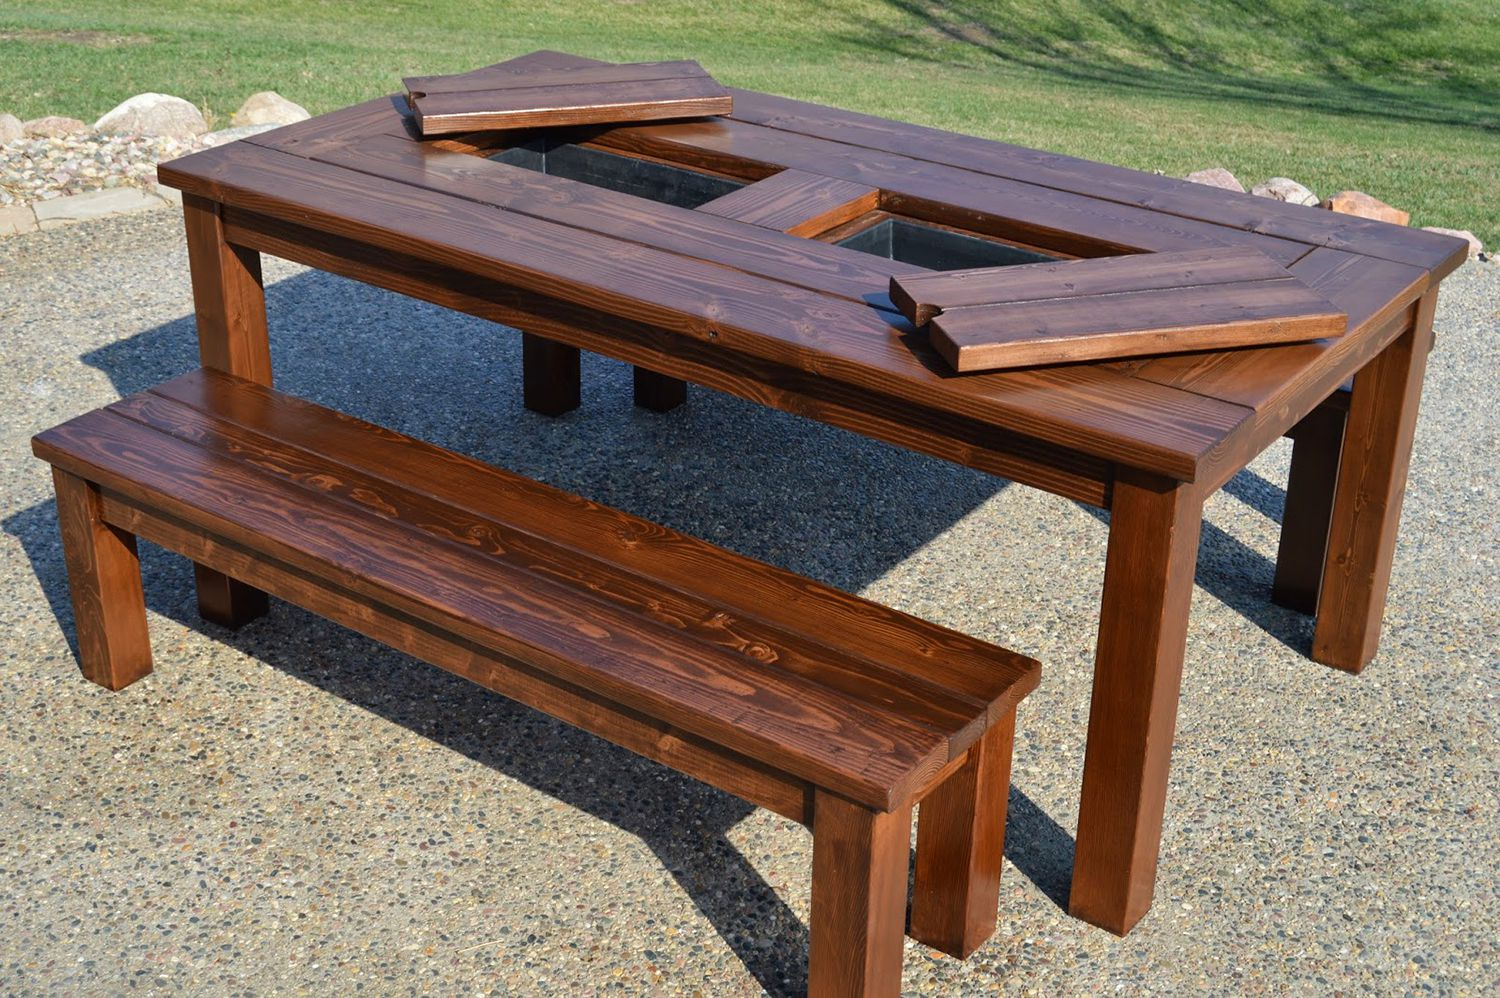 free nic table plans all shapes and sizes patio witih built drink coolers kruses work remodelaholic outdoor side with cooler catering tablecloths vintage lucite dale tiffany glass